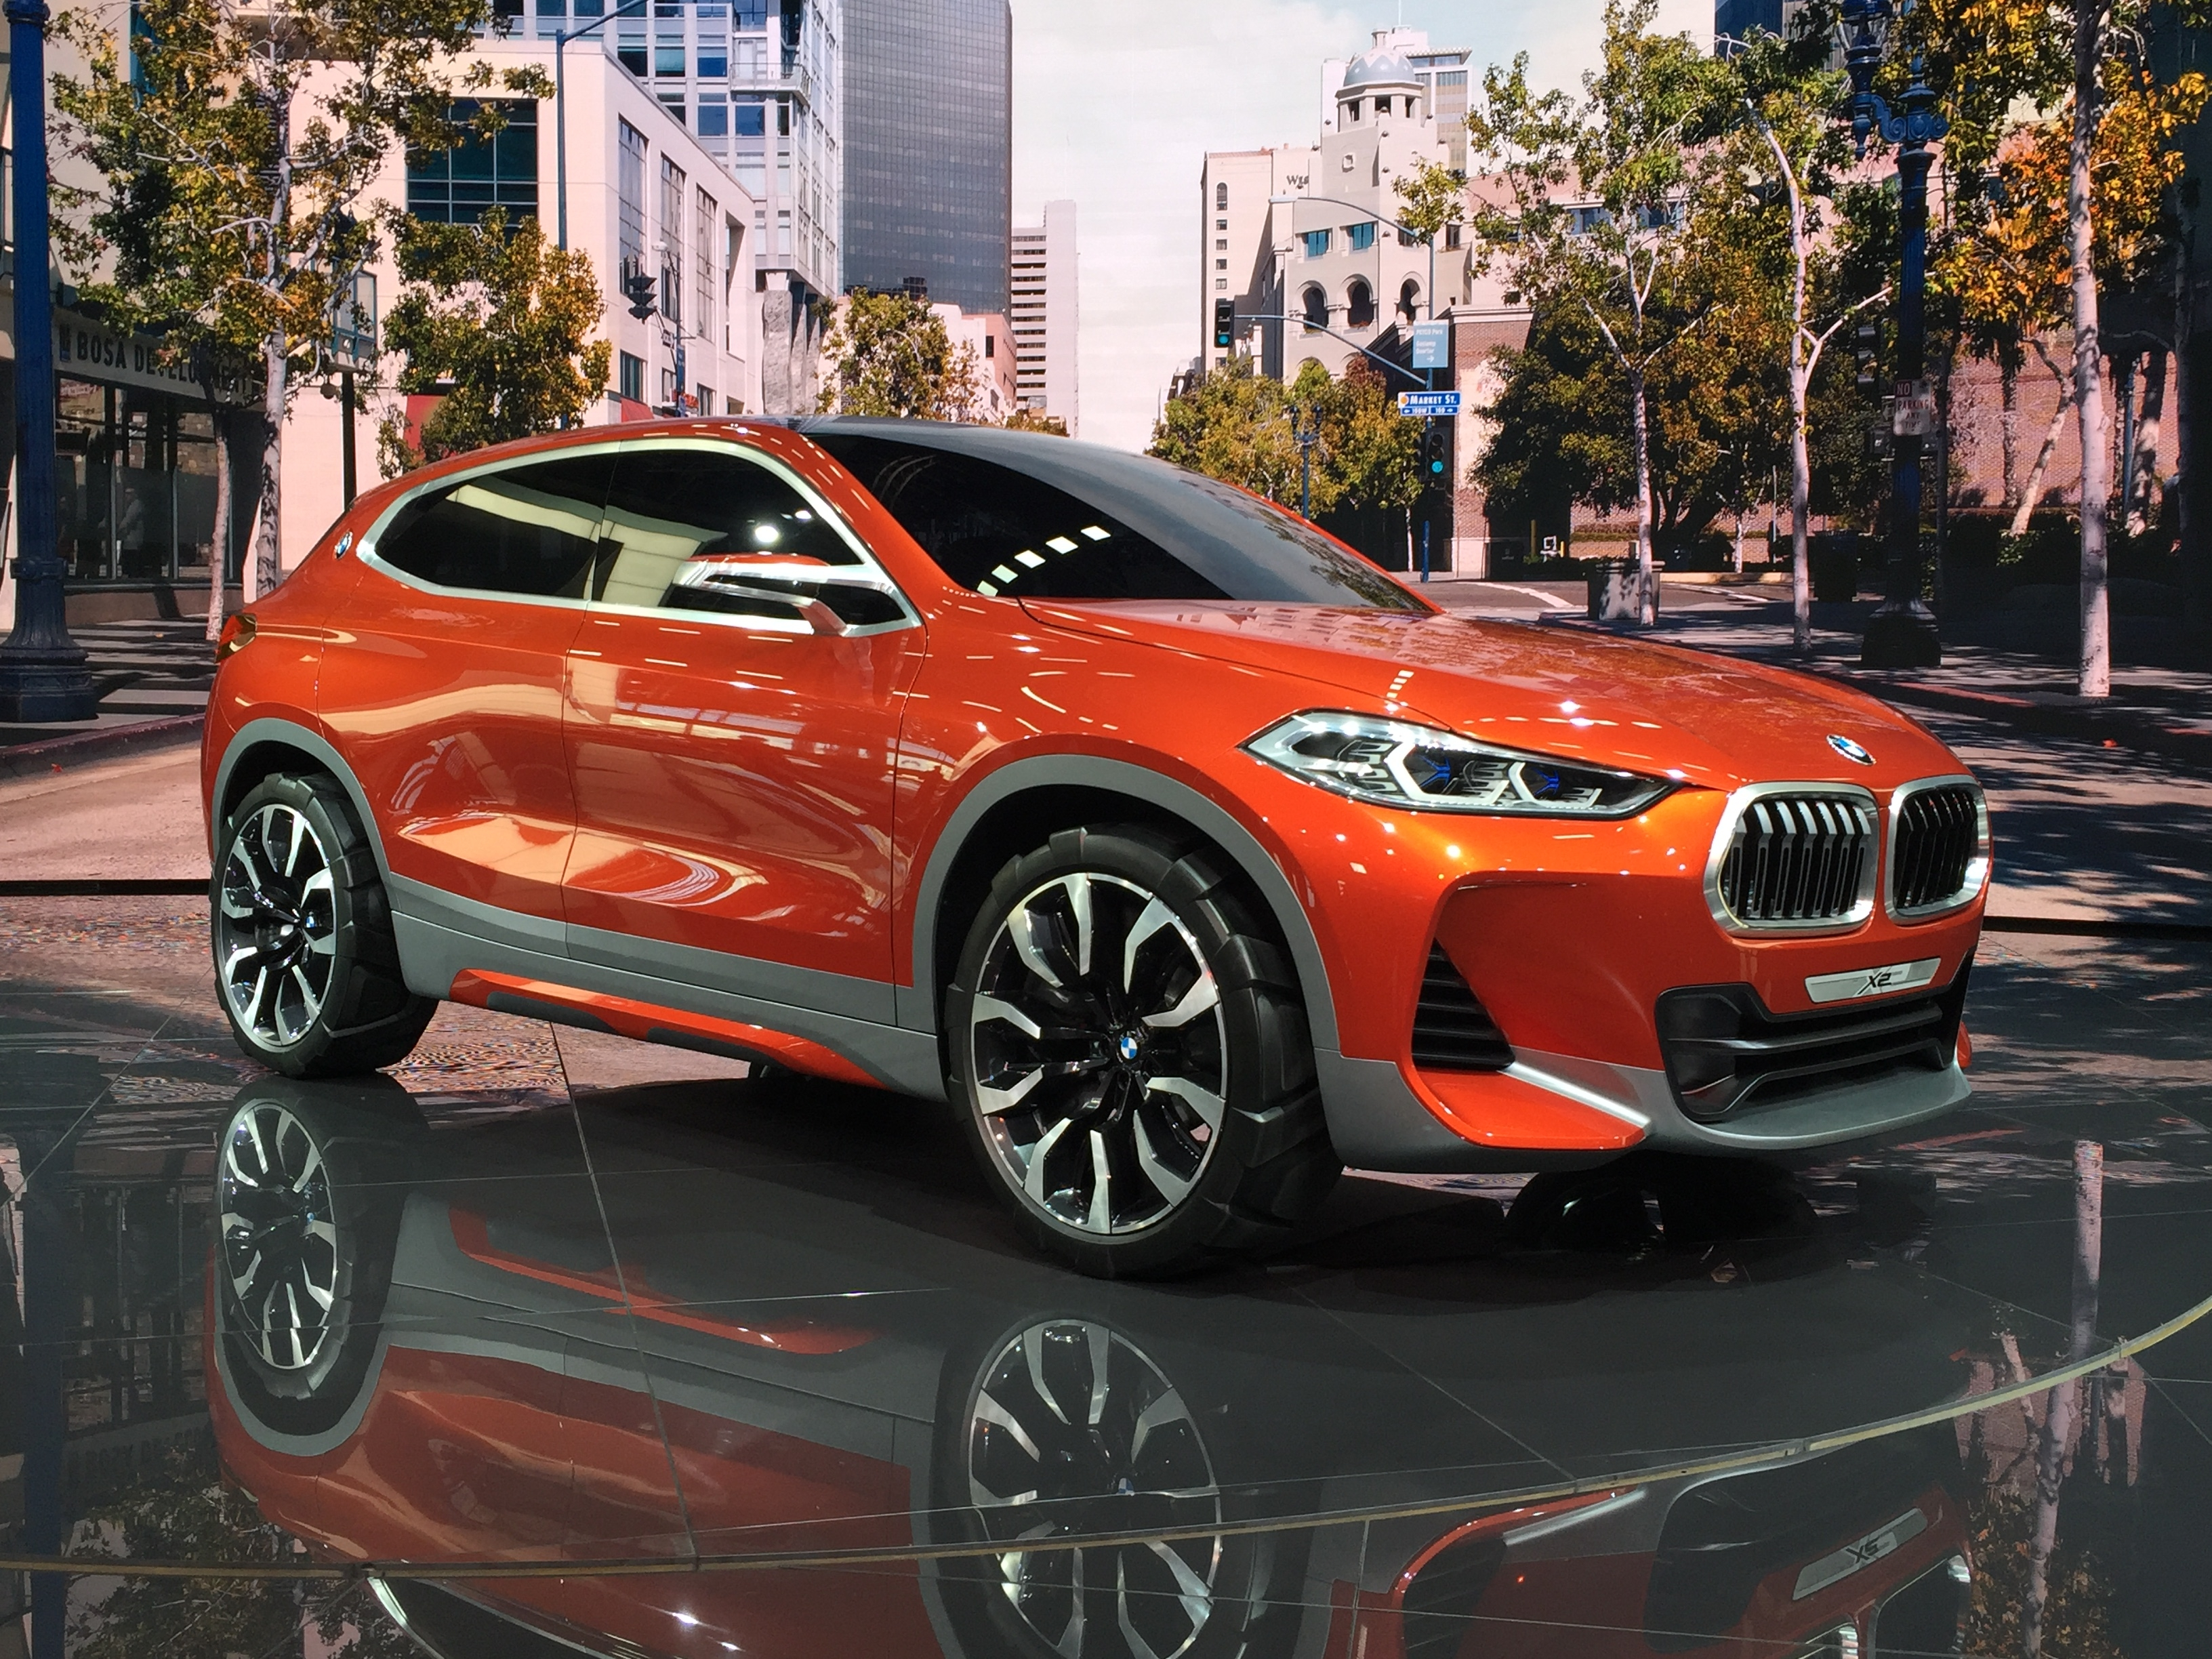 2018 bmw x3 new car release date and review 2018 amanda felicia. Black Bedroom Furniture Sets. Home Design Ideas